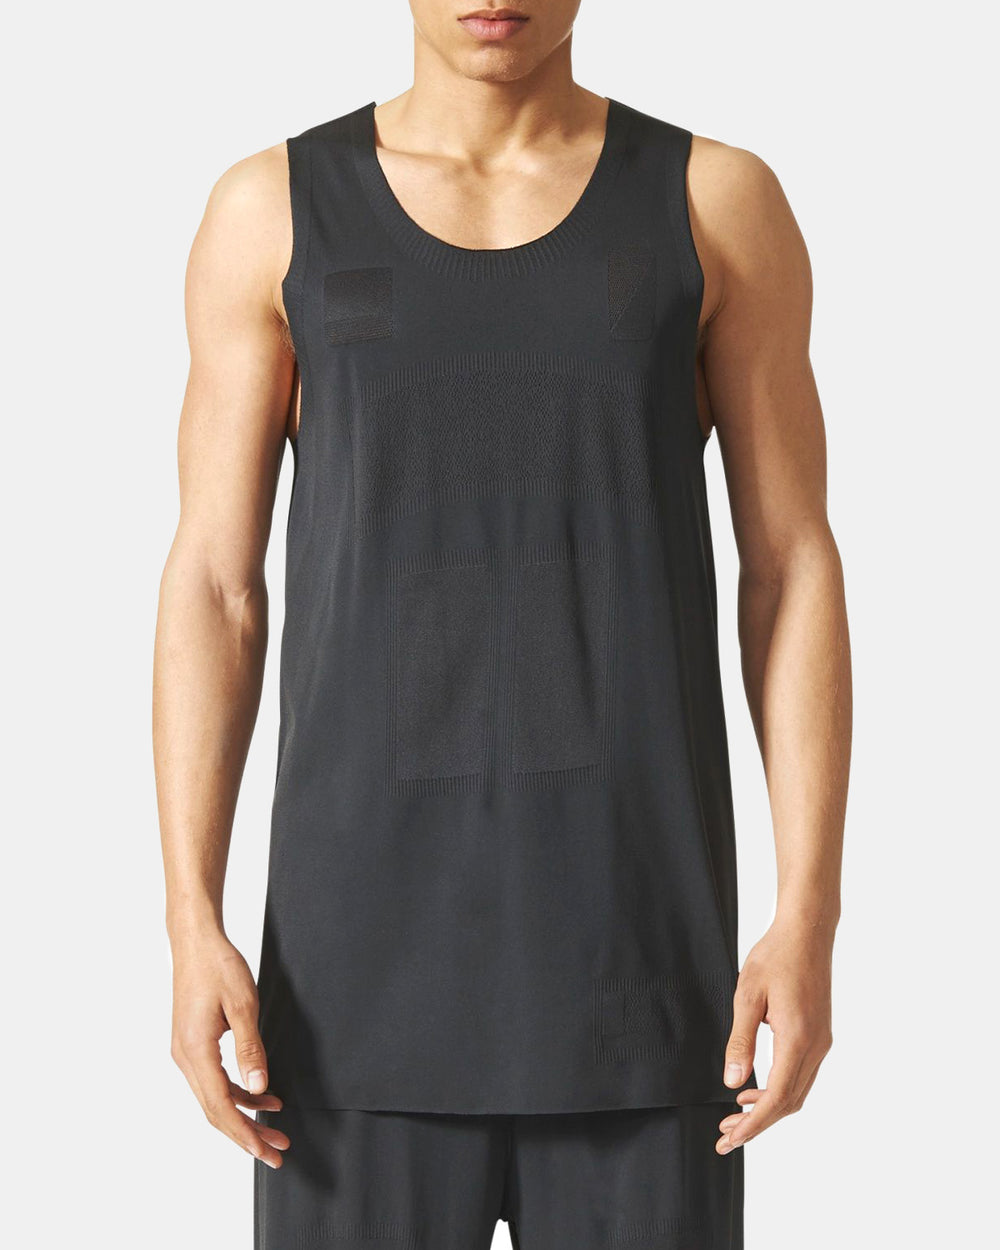 adidas - Day One Seamless Tank Top (Solid Grey)